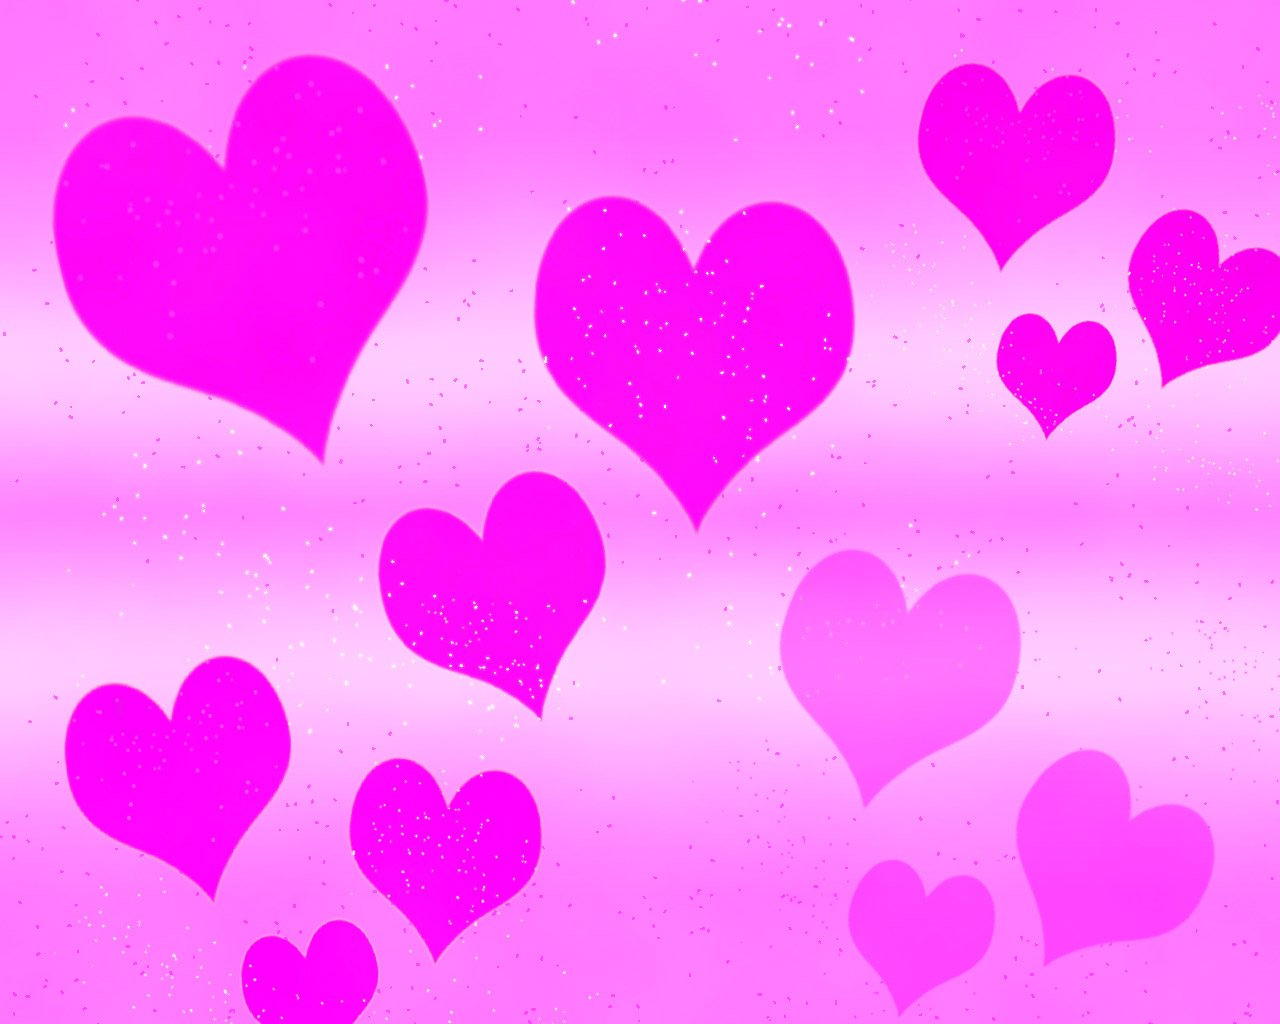 Pink Heart Wallpaper 10058 Hd Wallpapers in Love   Imagescicom 1280x1024